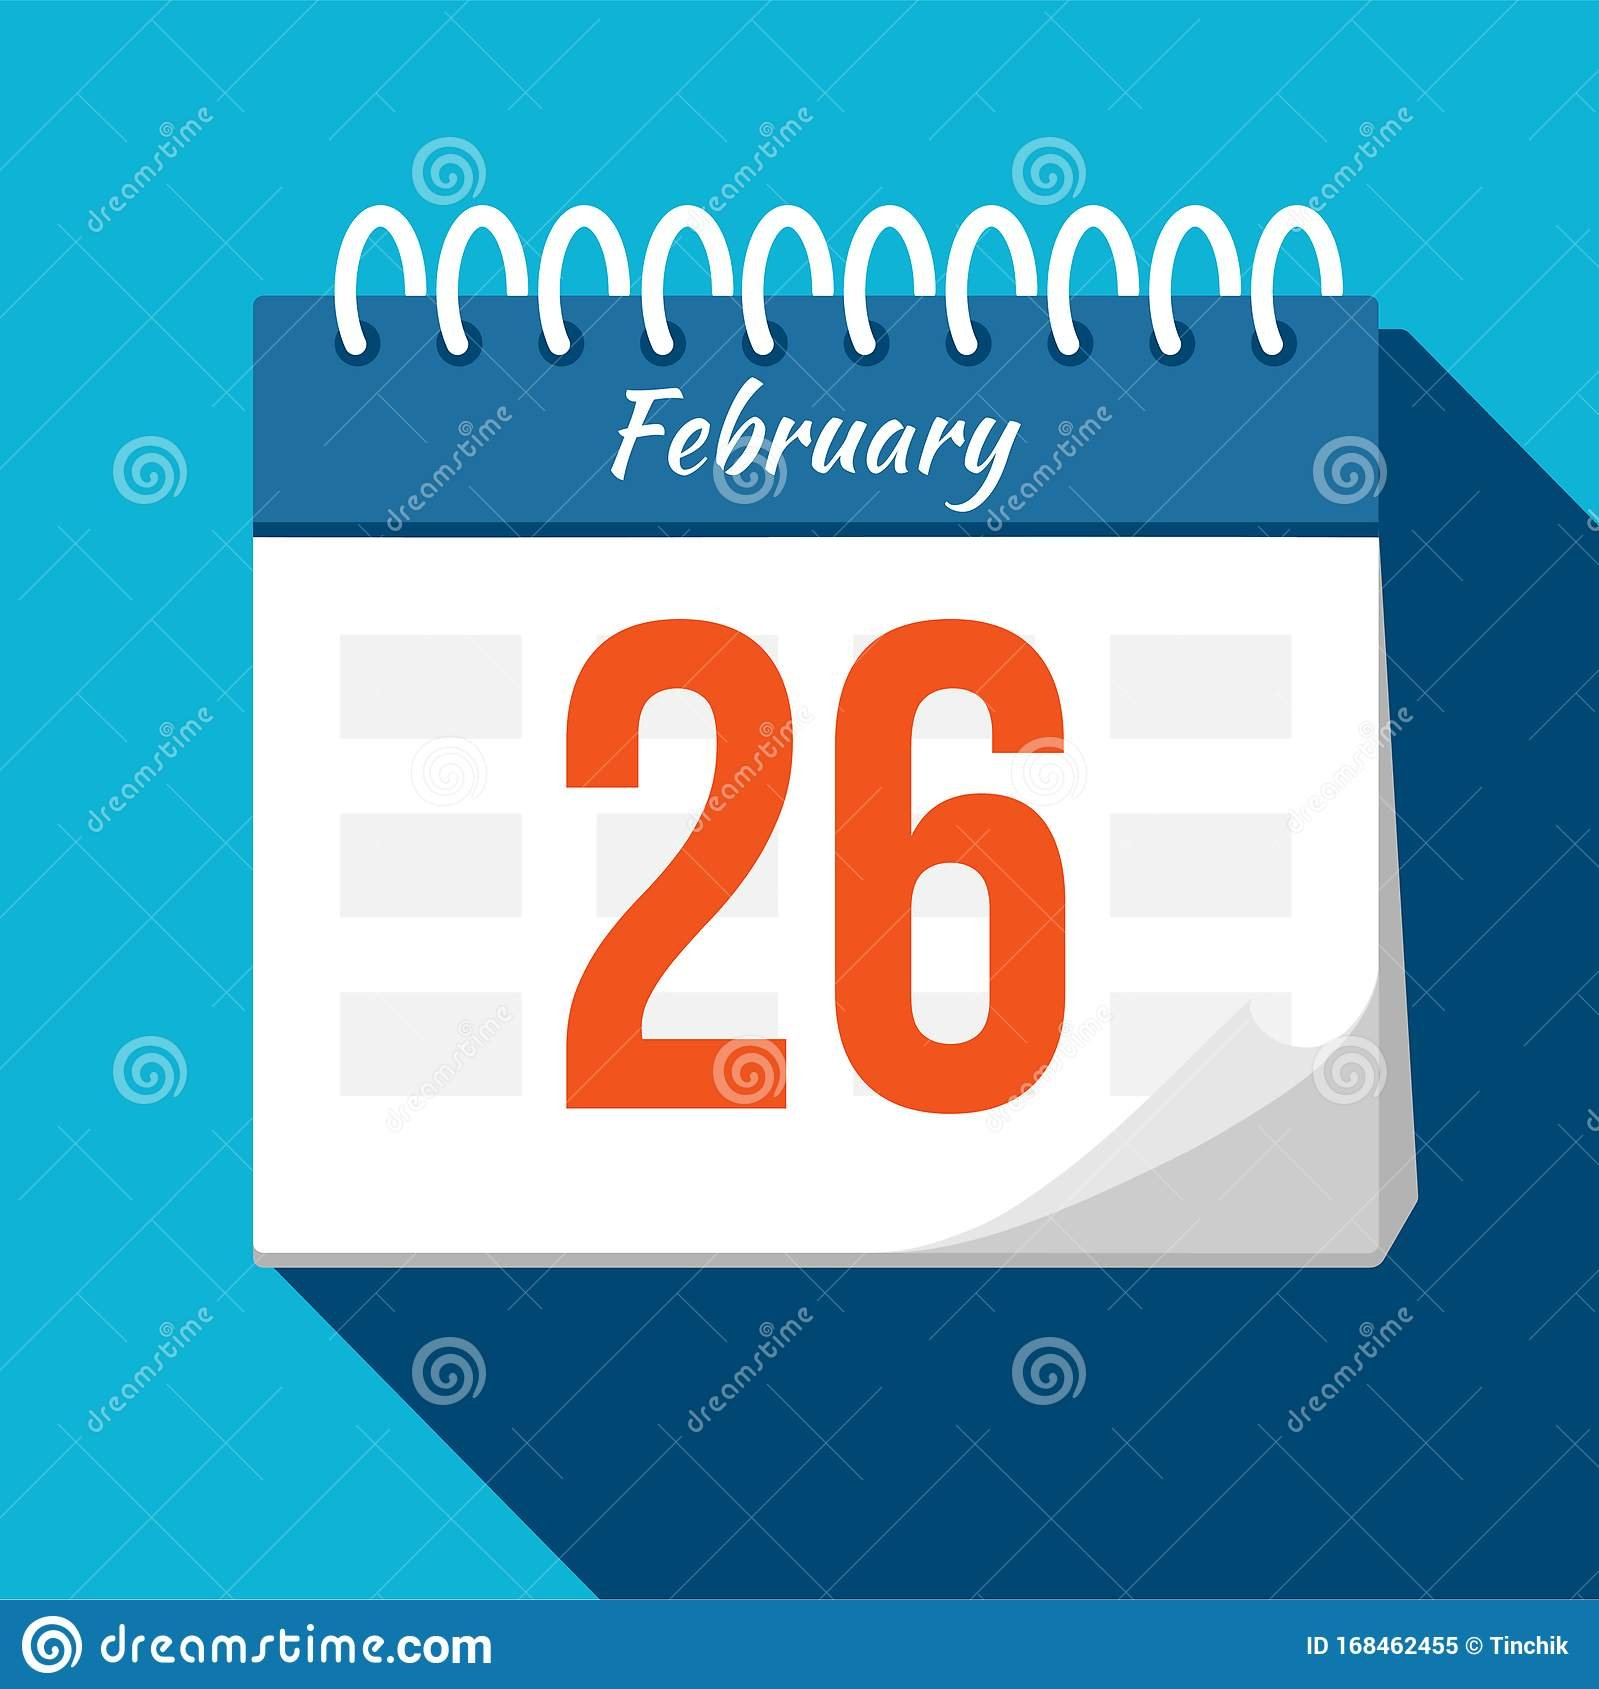 Calendar Icon. Calendar Date - February. Planning. Time Free Calendar For Time Management